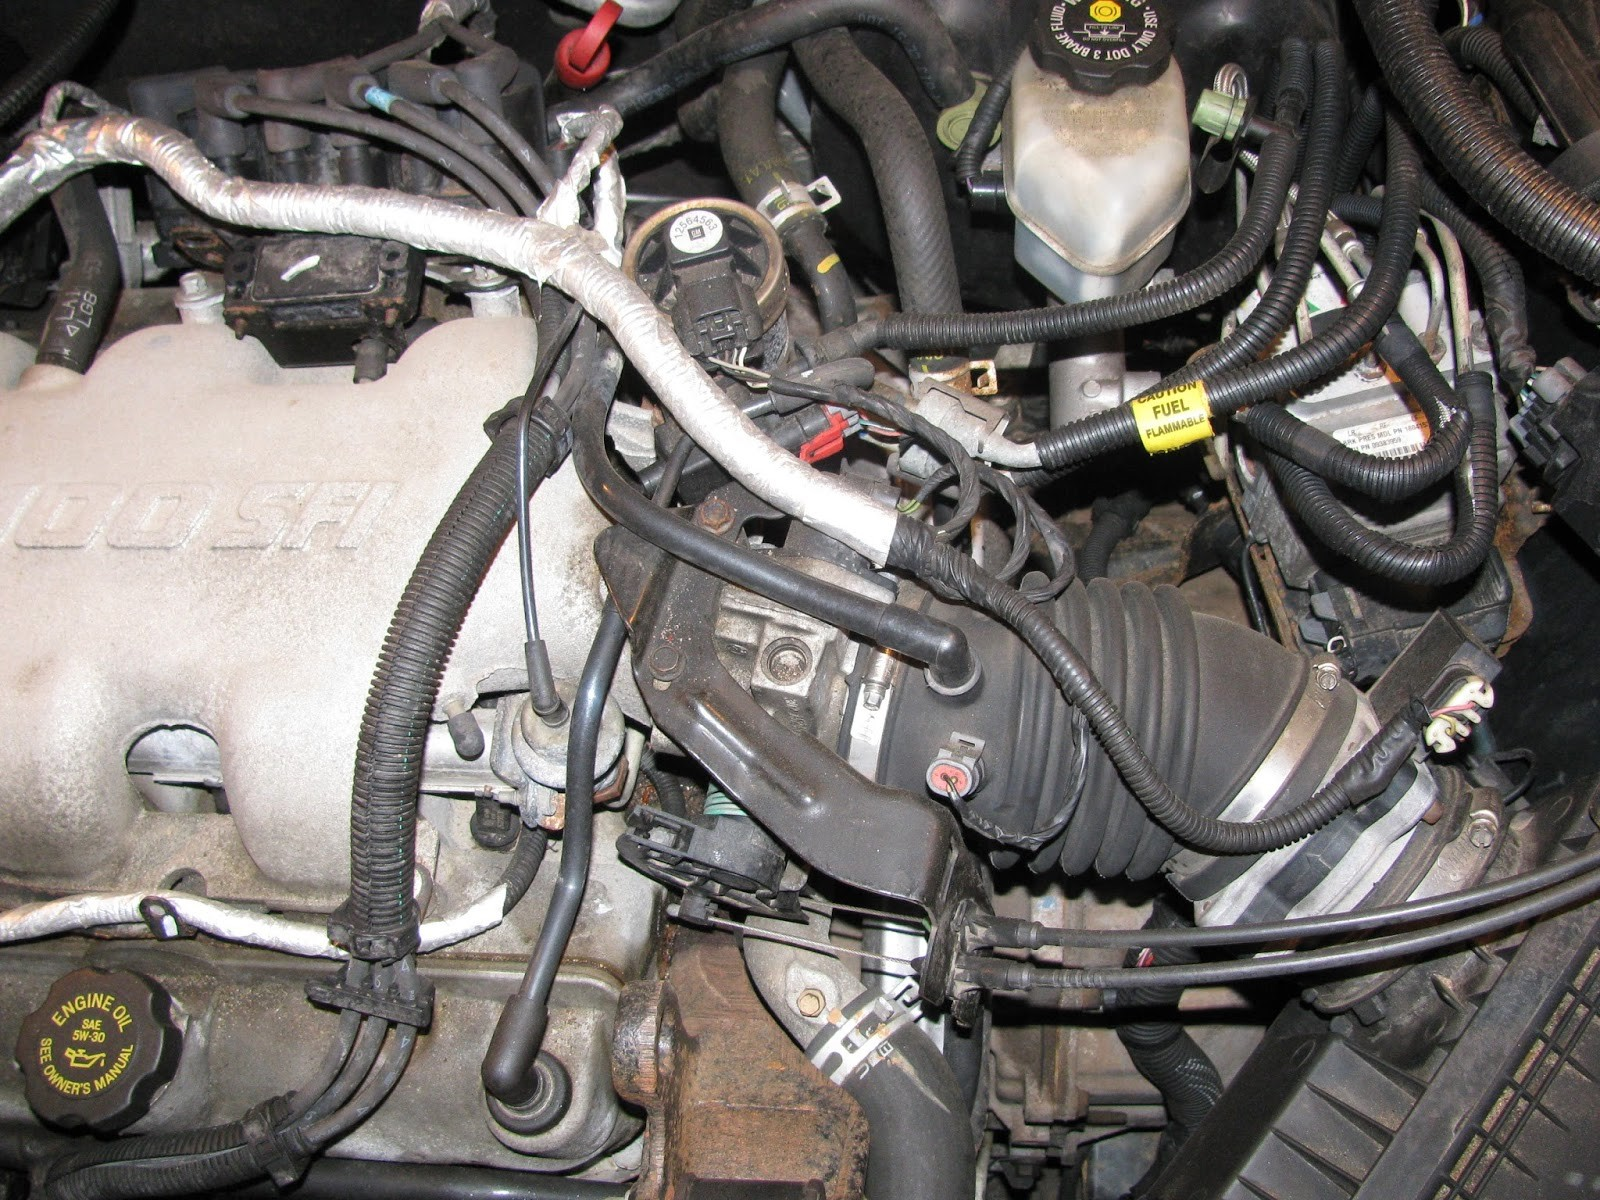 3 1l Engine Diagram For Oldsmobile Wiring Will Be A Thing 1996 Pontiac Grand Am Show Me Tell 403 Hot Rod Network Rh Detoxicrecenze Com Chevy V6 31